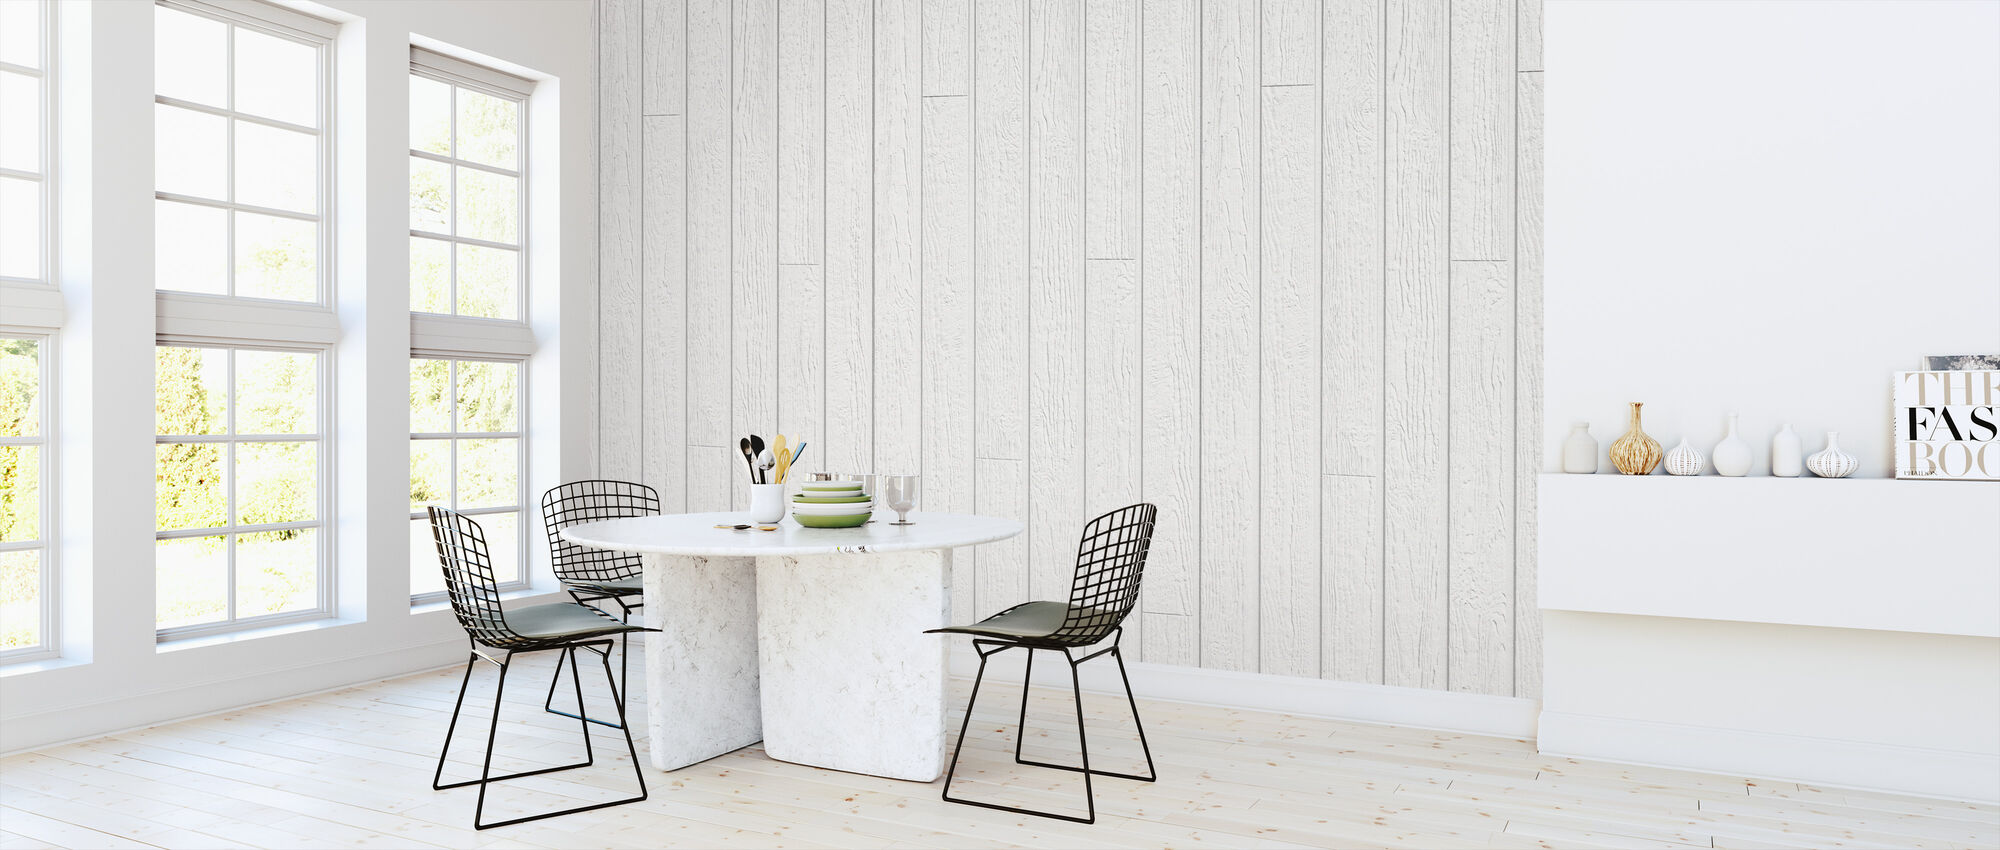 White Vintage Planks - Wallpaper - Kitchen